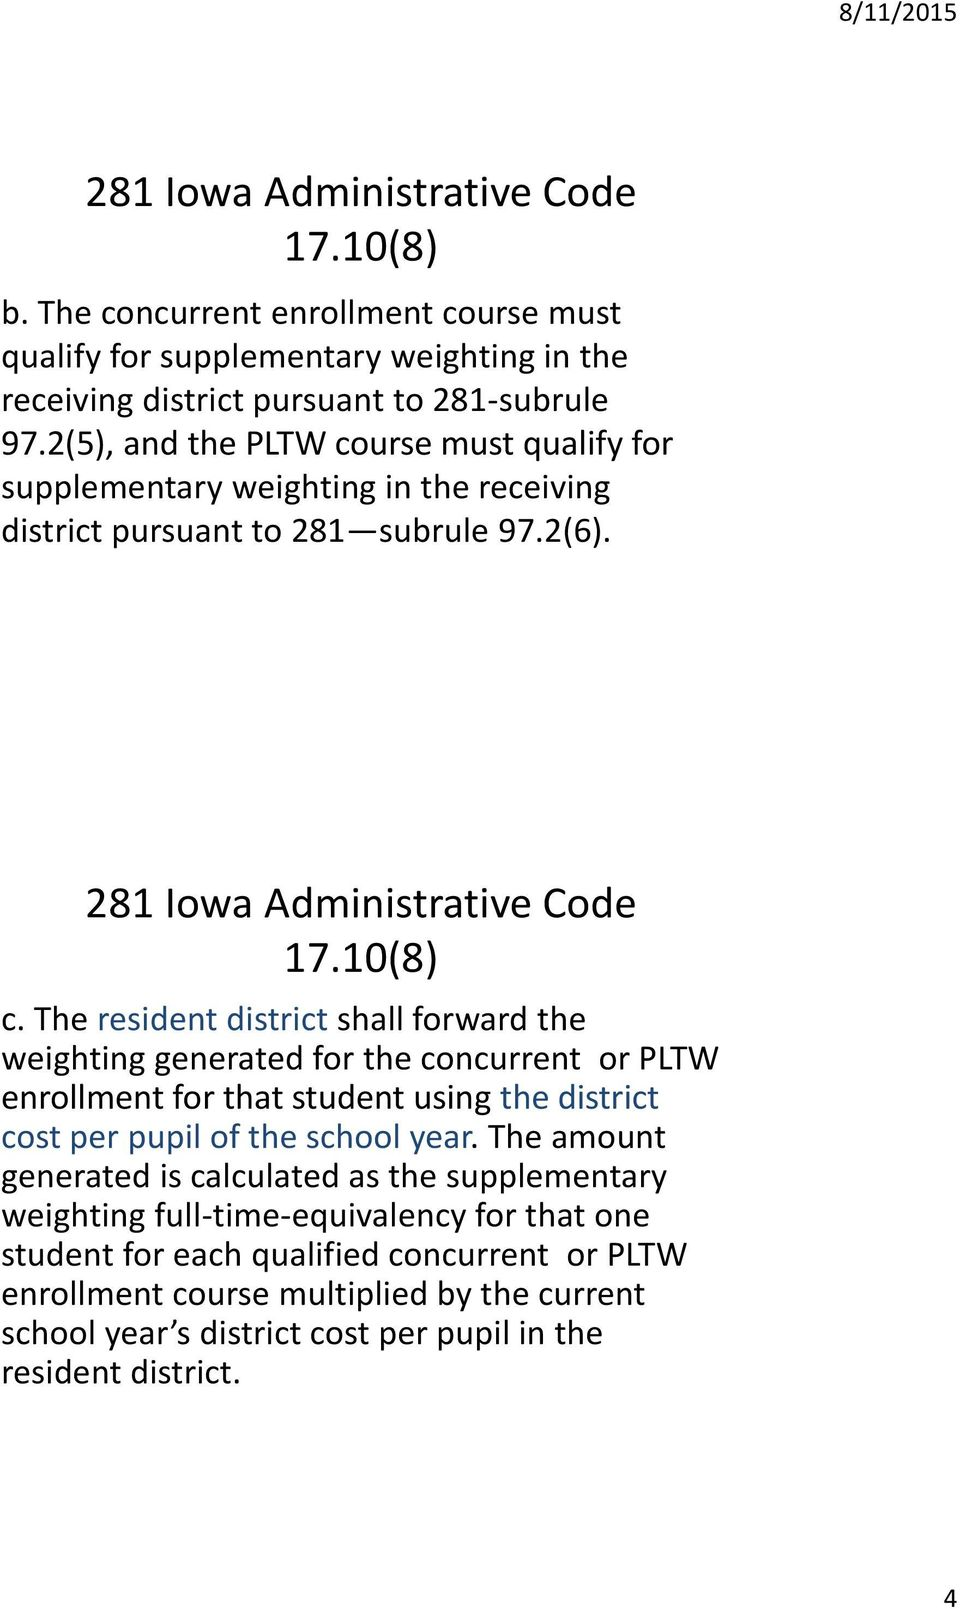 The resident district shall forward the weighting generated for the concurrent or PLTW enrollment for that student using the district cost per pupil of the school year.